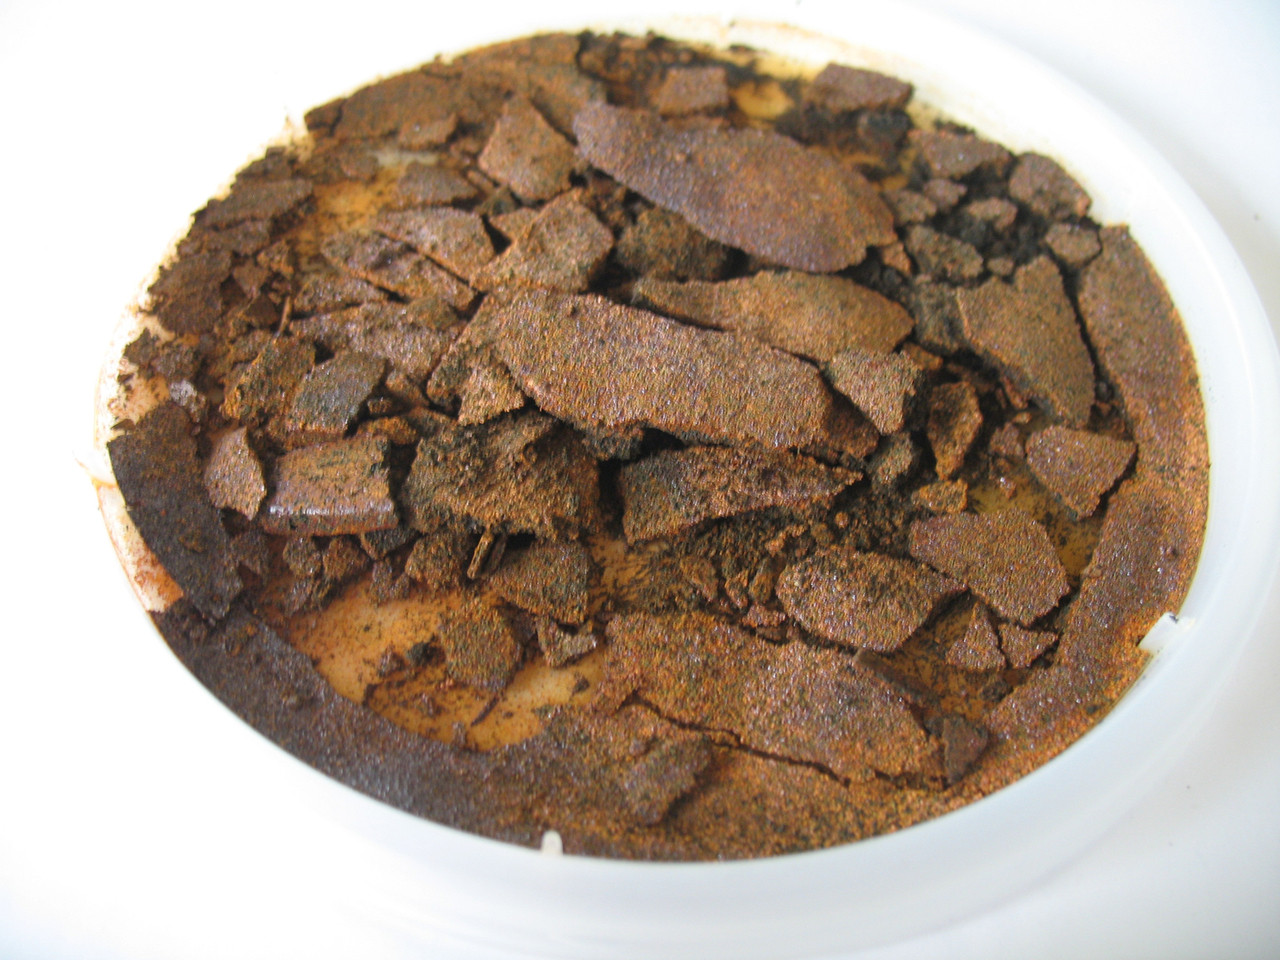 Black iron powder does not rust due to the protective coating. If you intend to make it rust you may spray it with water with added surfactant  or liquid detergent. This image shows rusted S145C.